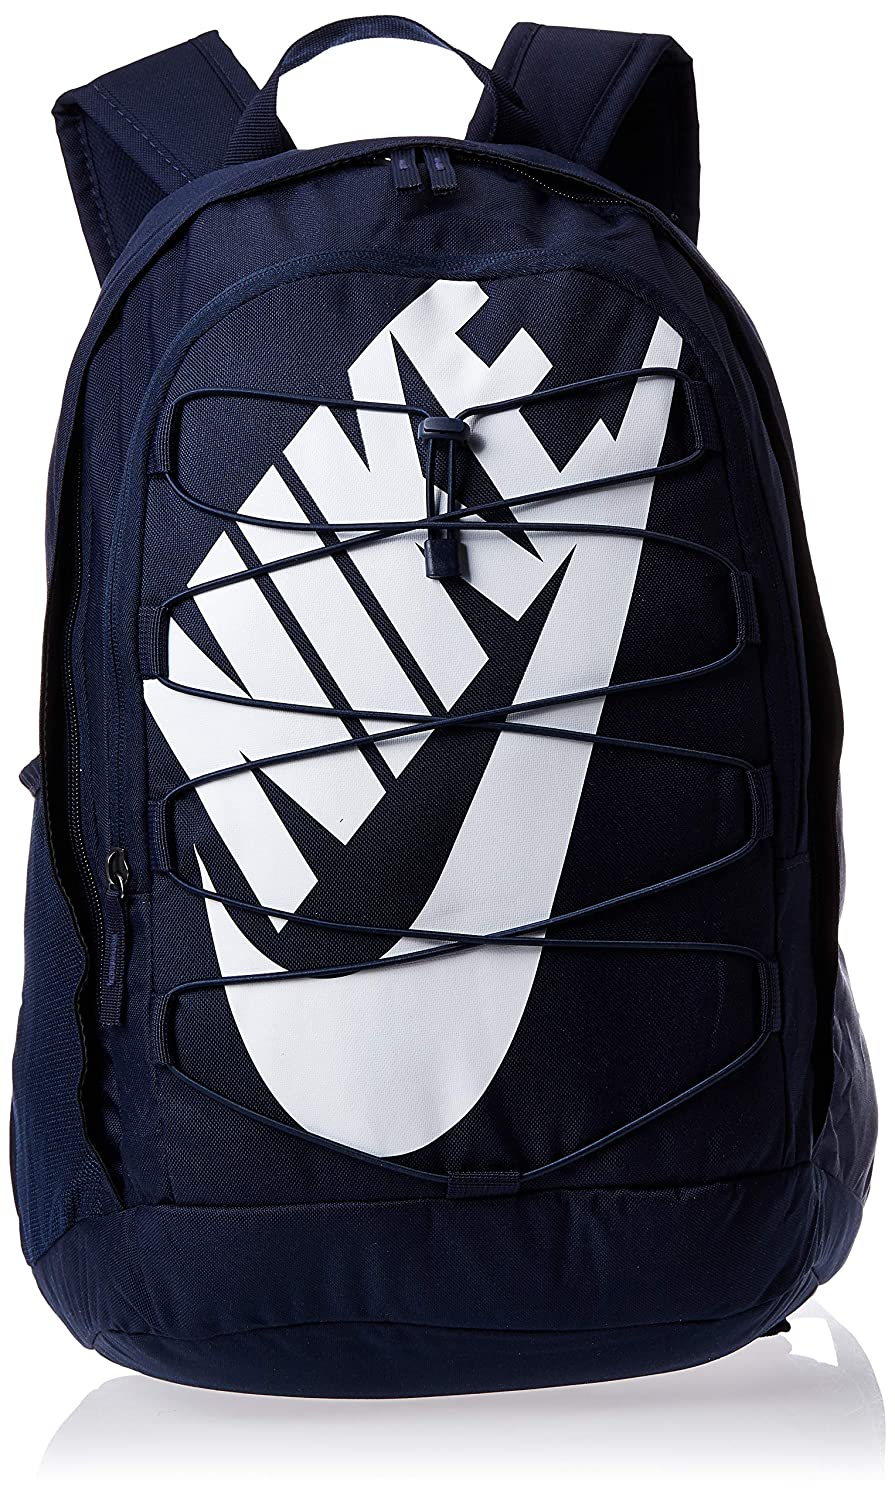 Nike Obsidian Casual Backpack